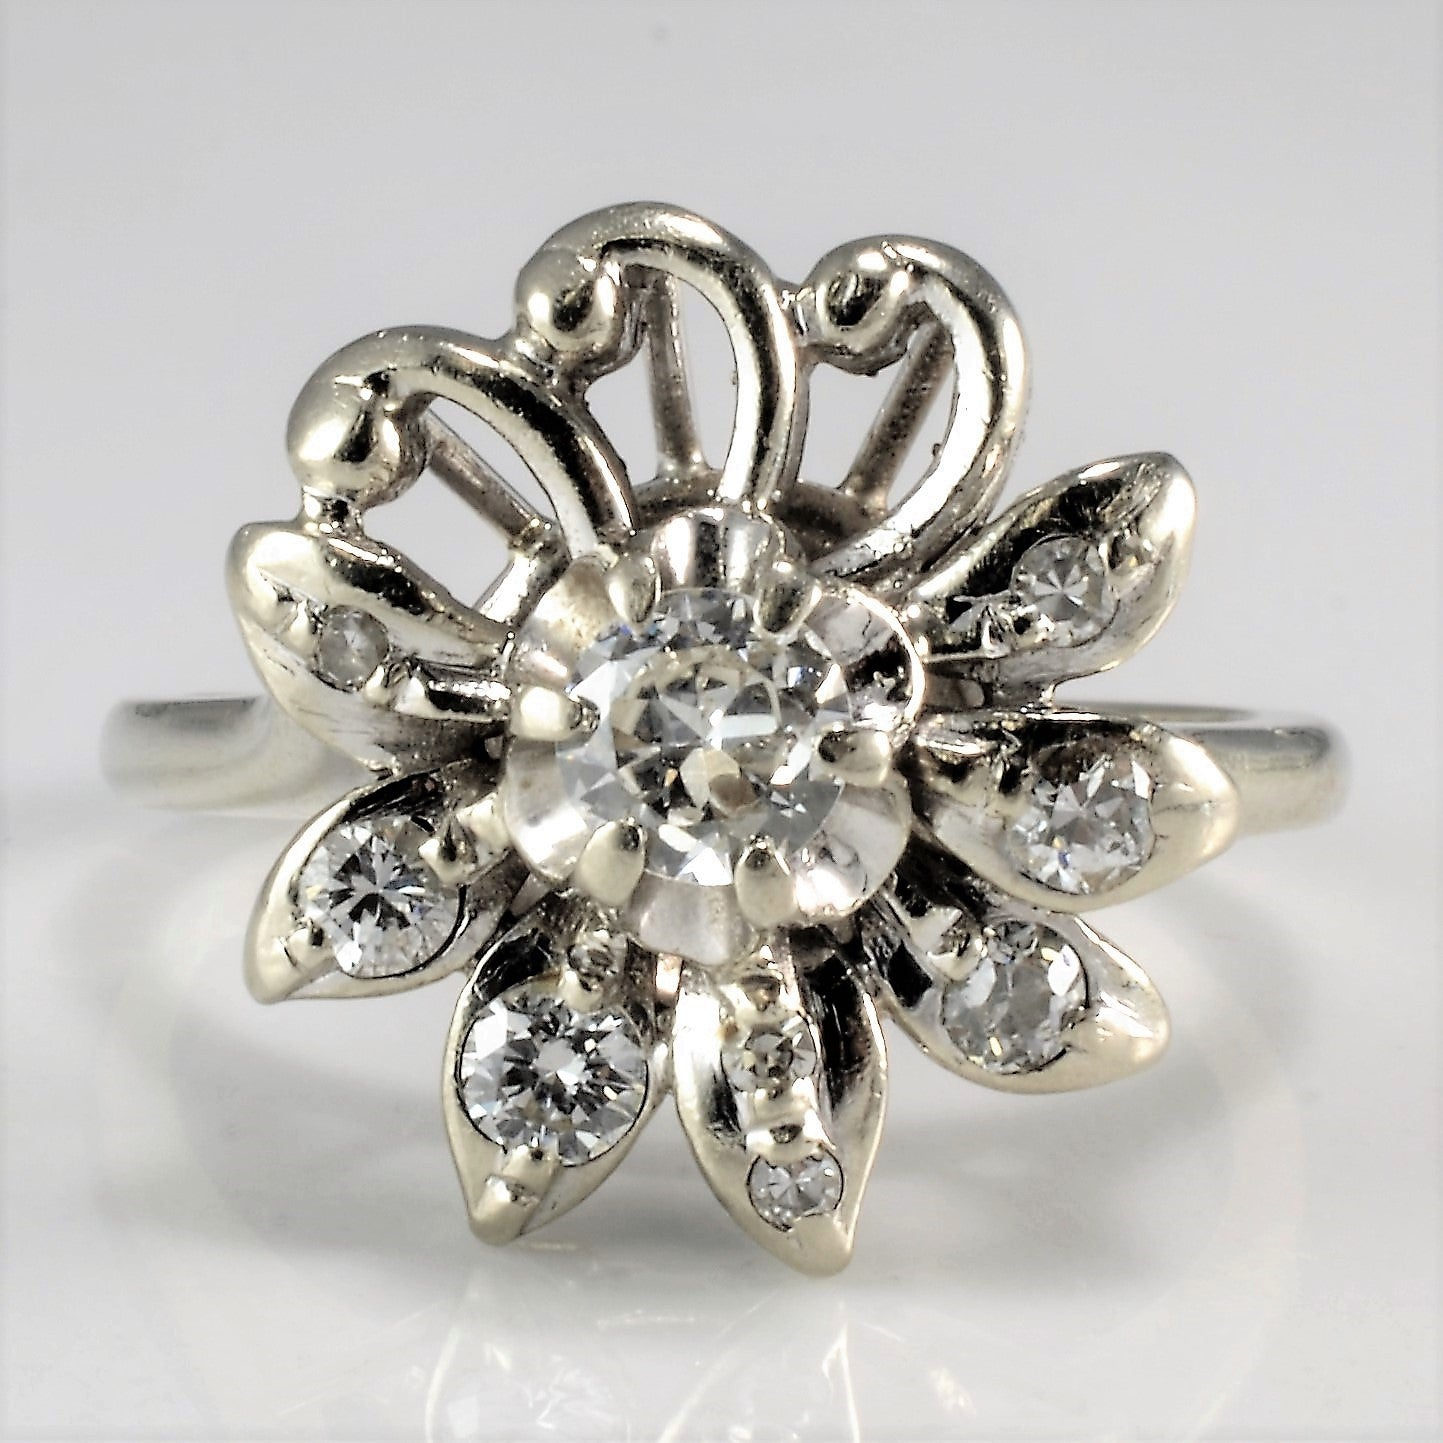 High Set Floral Diamond Ring | 0.39 ctw, SZ 6 |